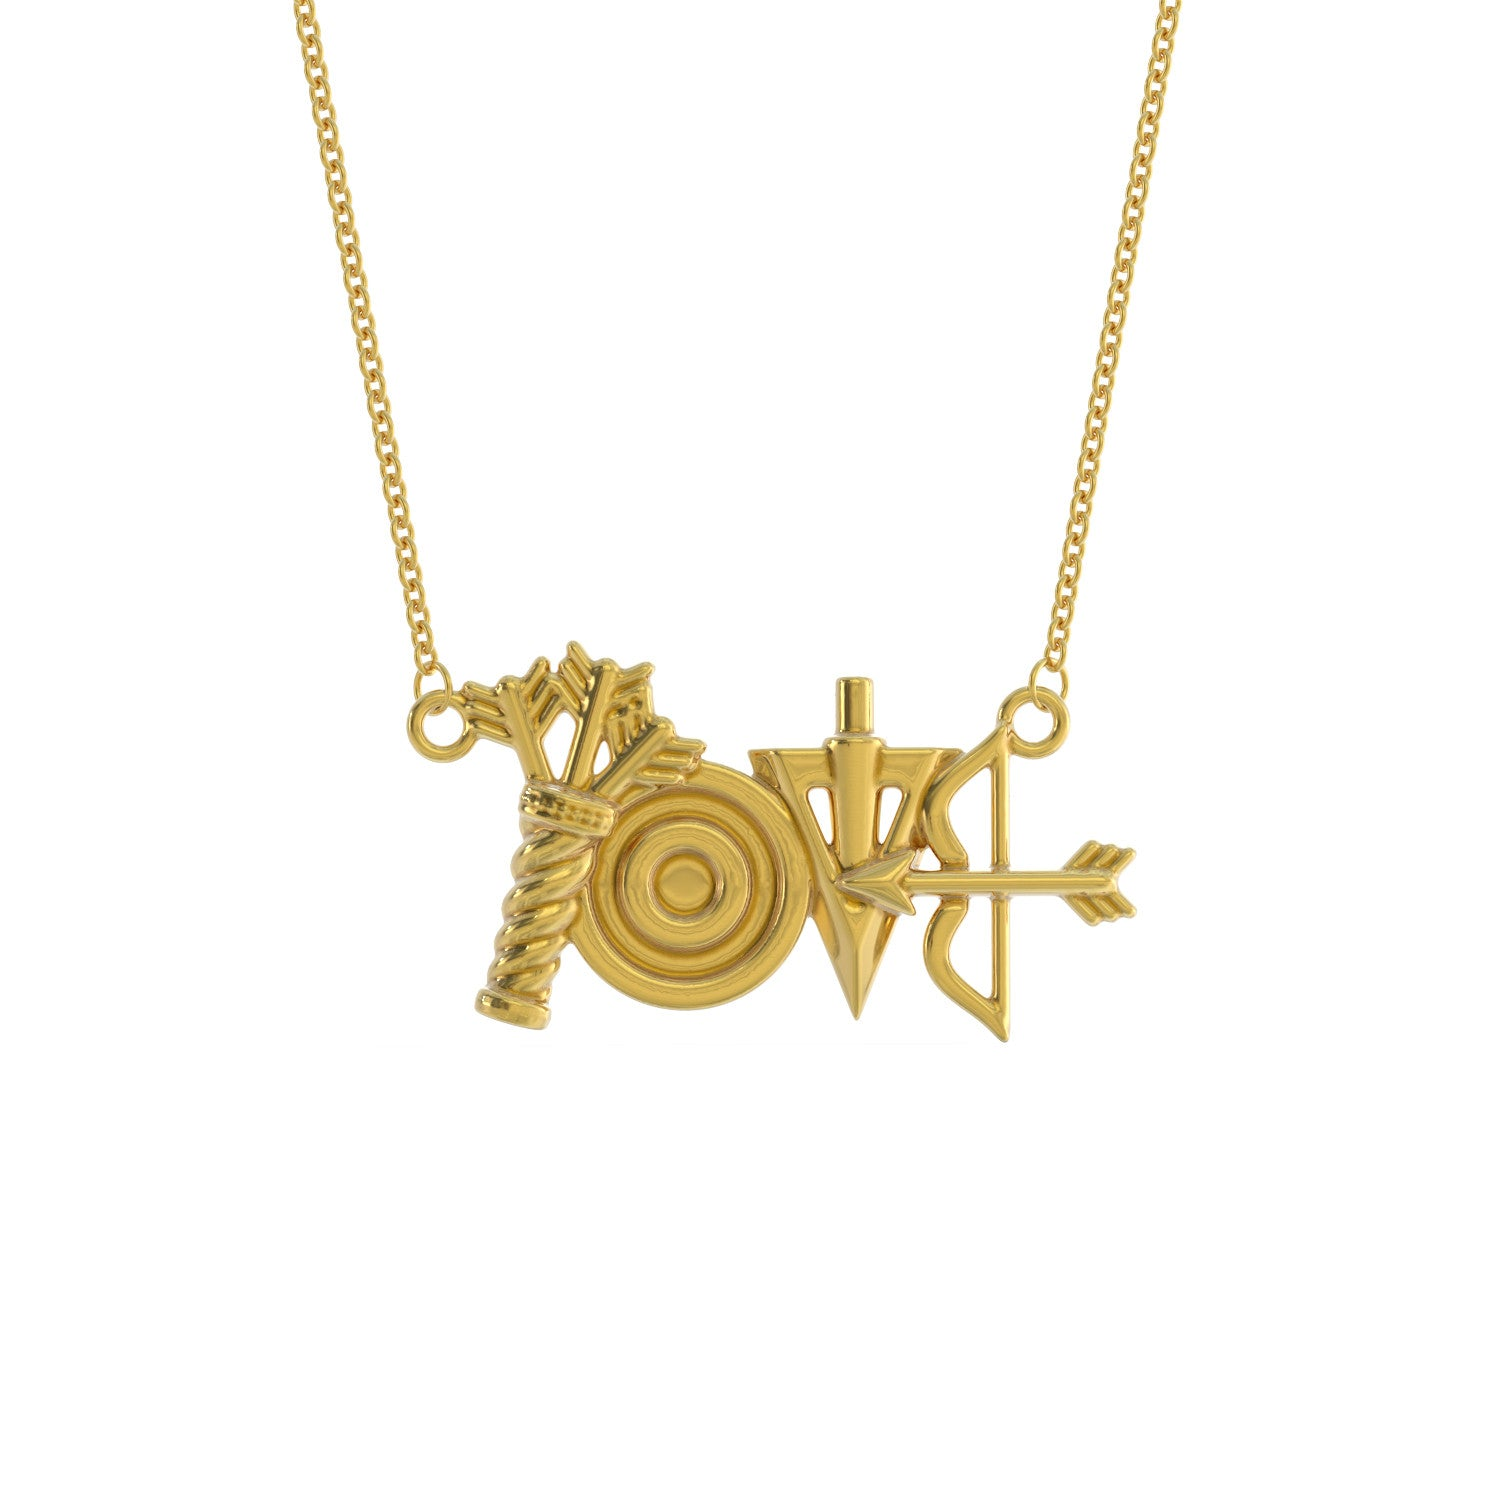 Love Archery Necklace